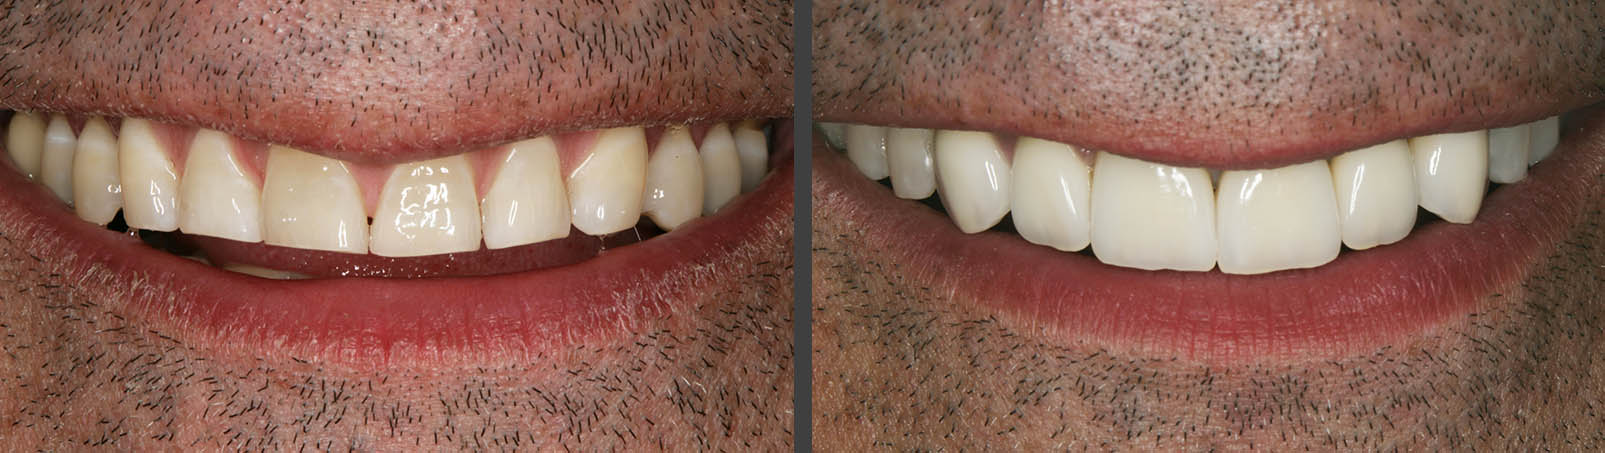 Veneers | Cosmetic Dentistry Before And After | Bunker Hill Dentistry | Houston,, TX